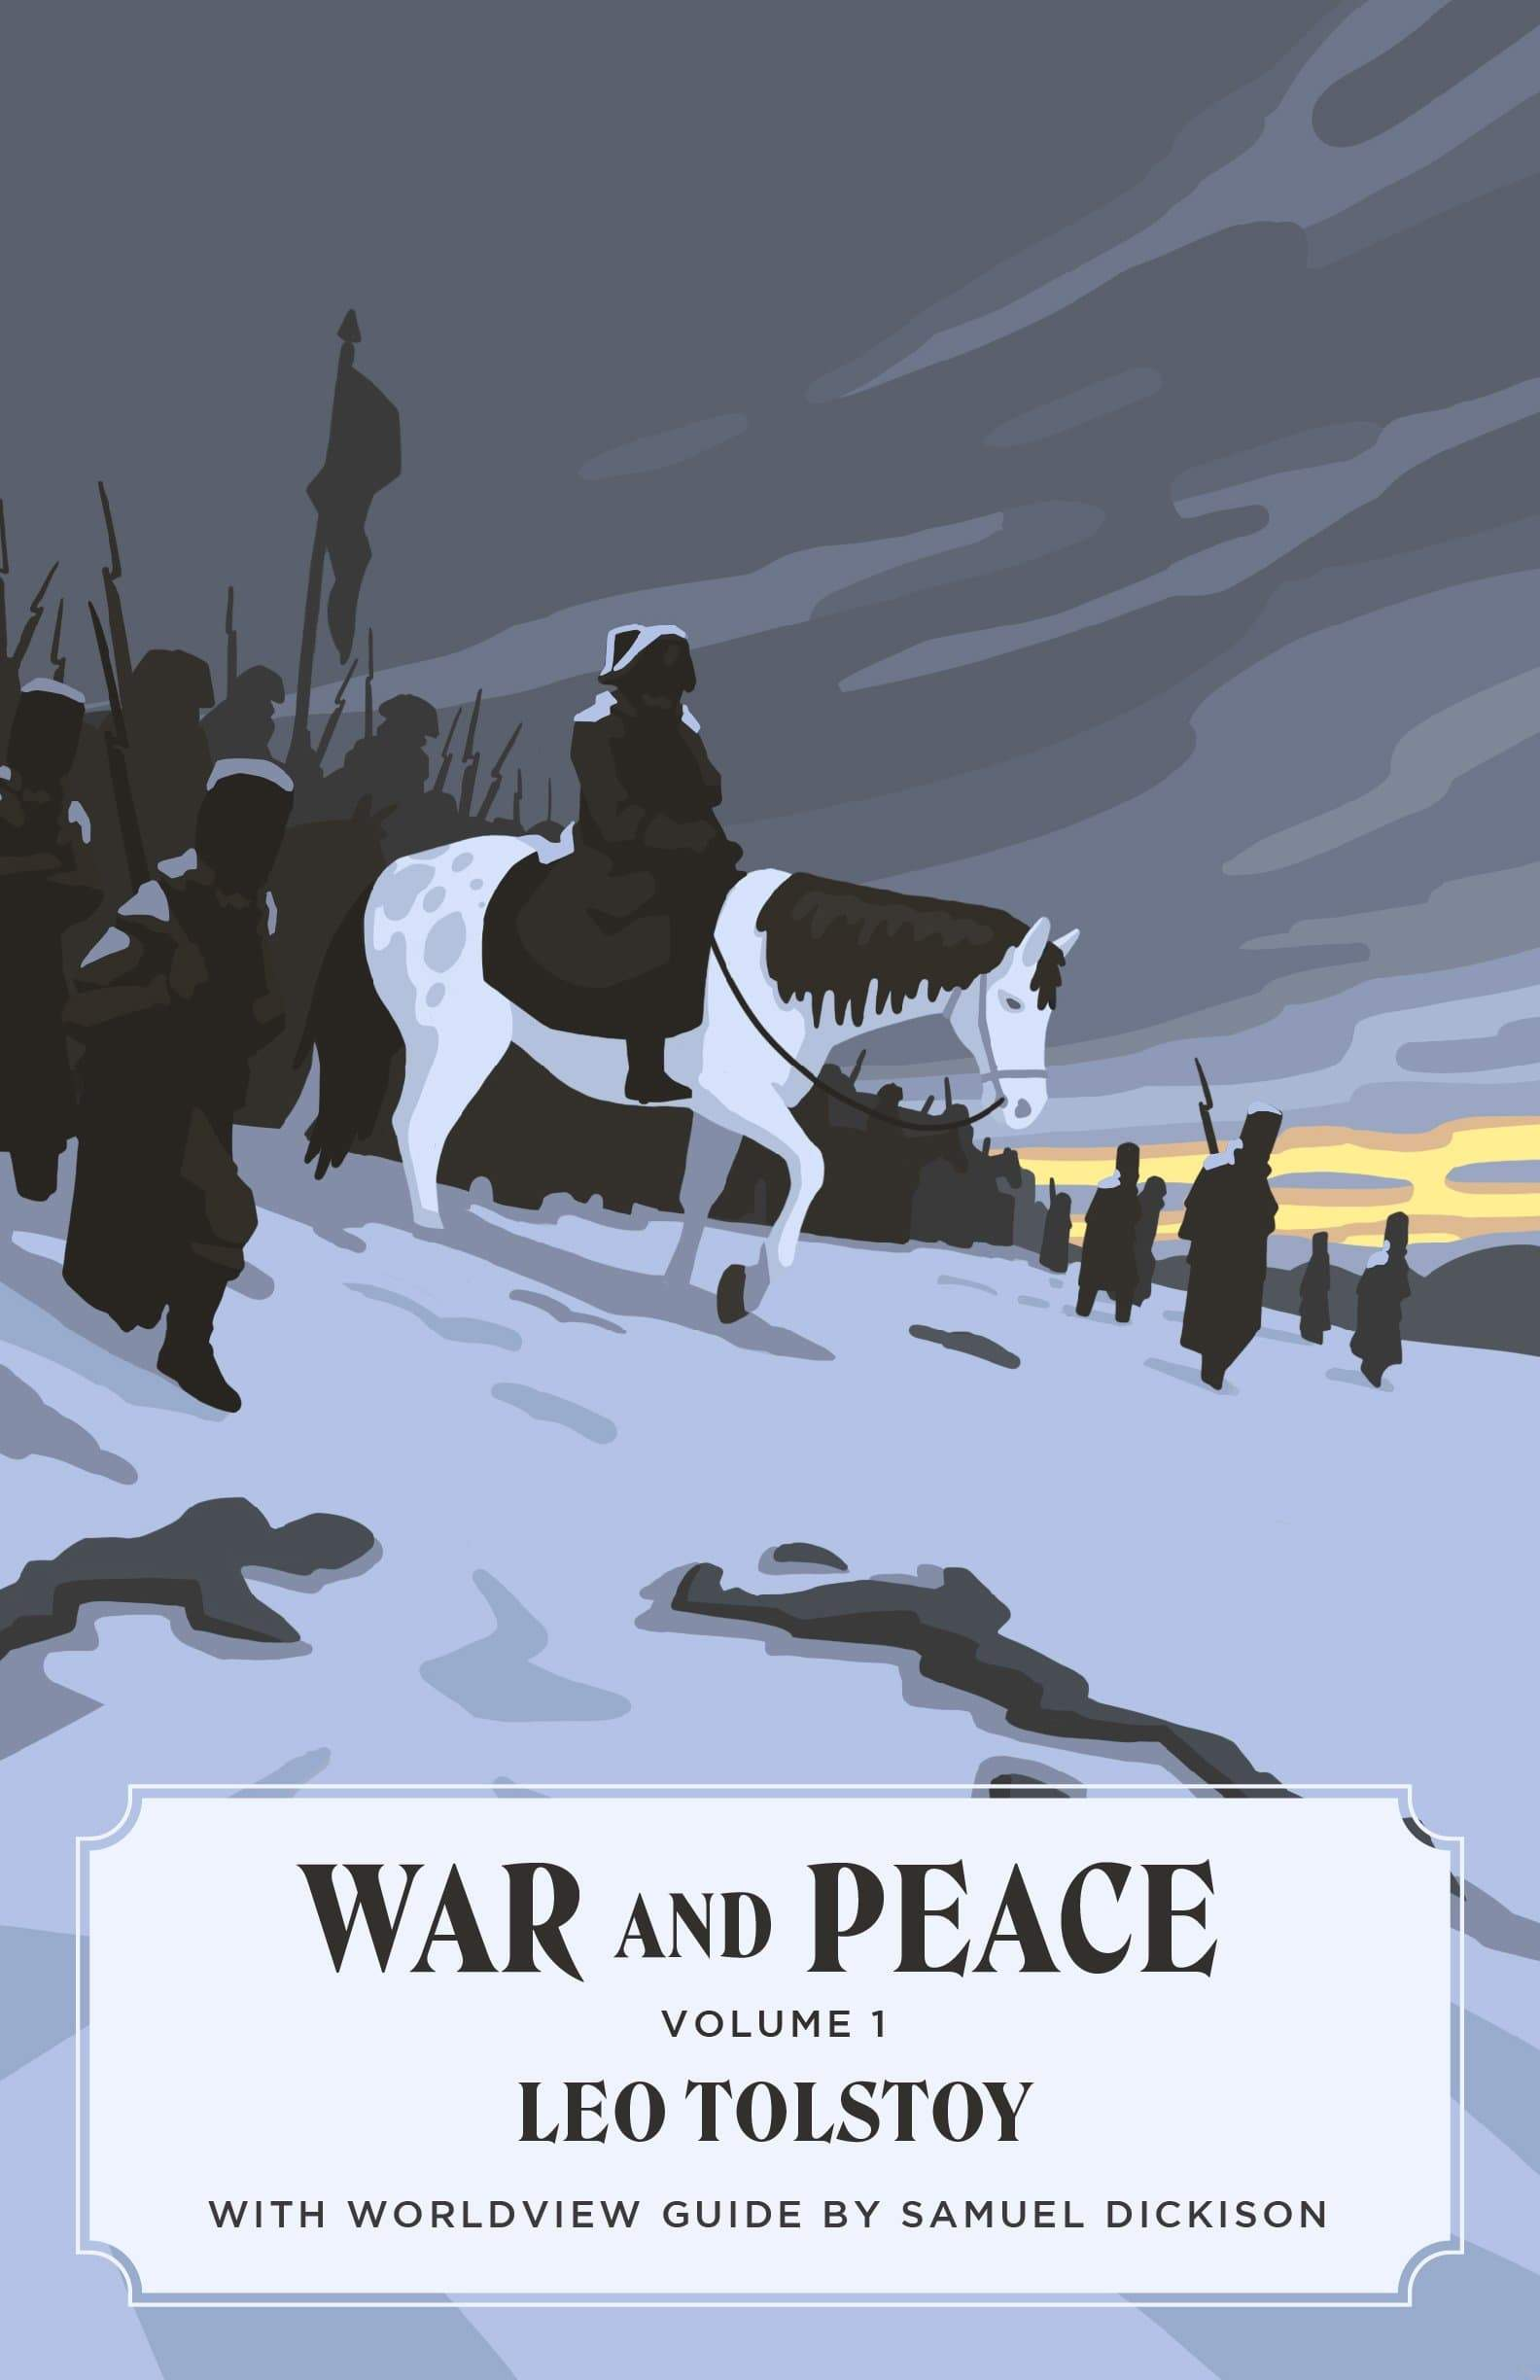 War and Peace, Vol. 1 (Worldview Edition)